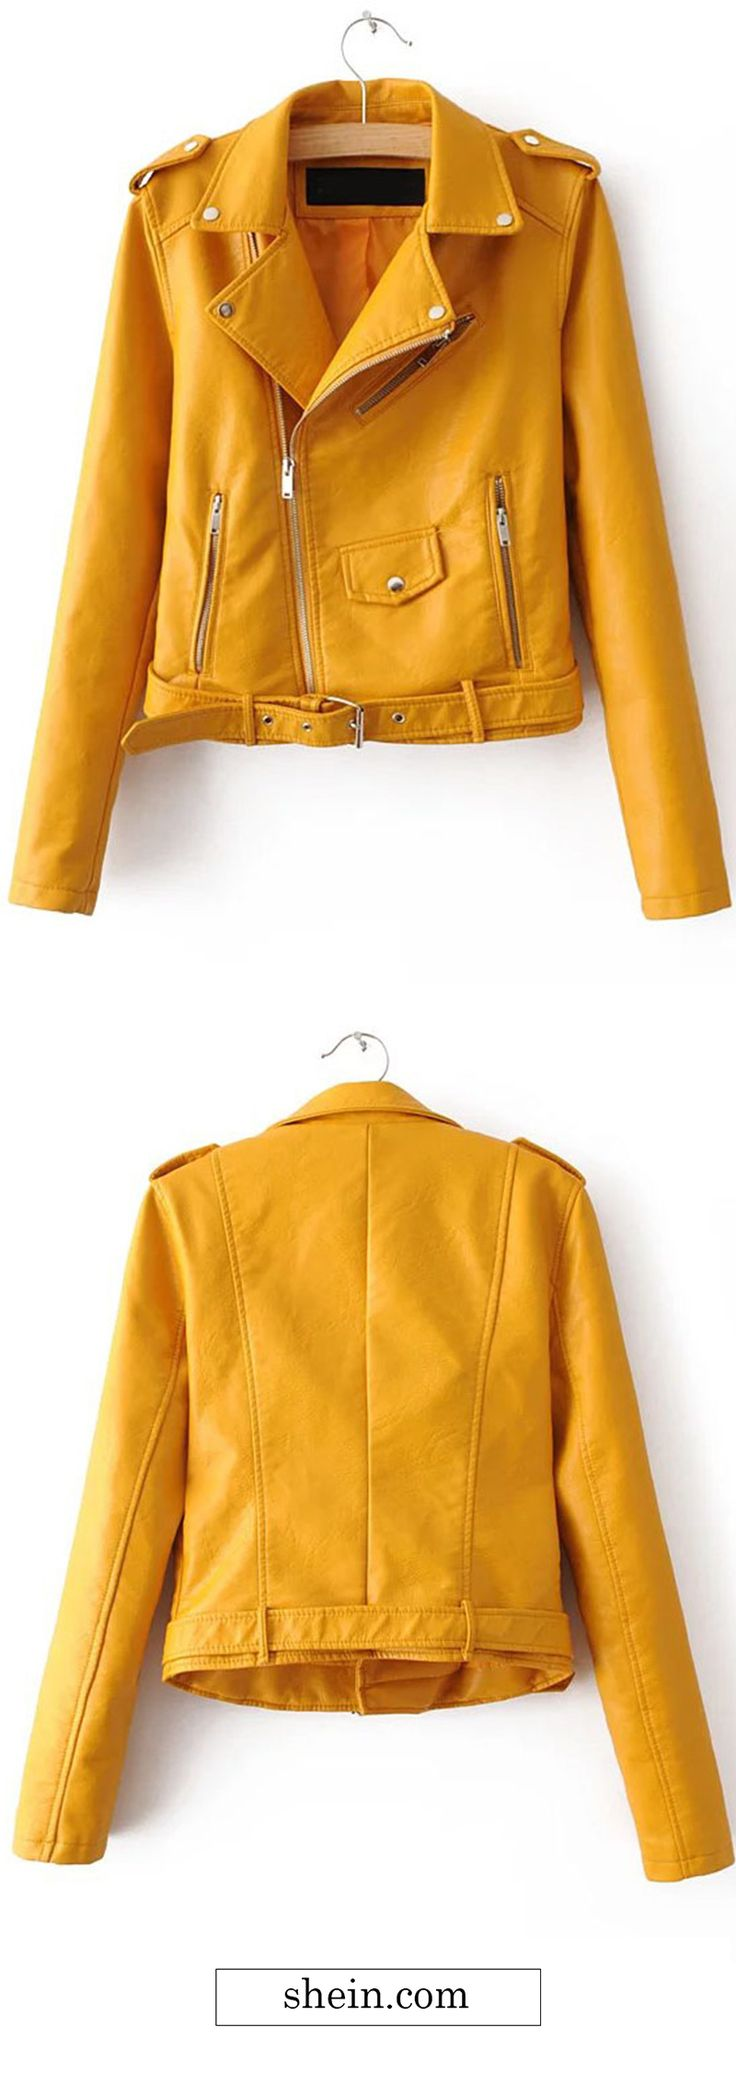 Yellow Faux Leather Belted Moto Jacket With Zipper